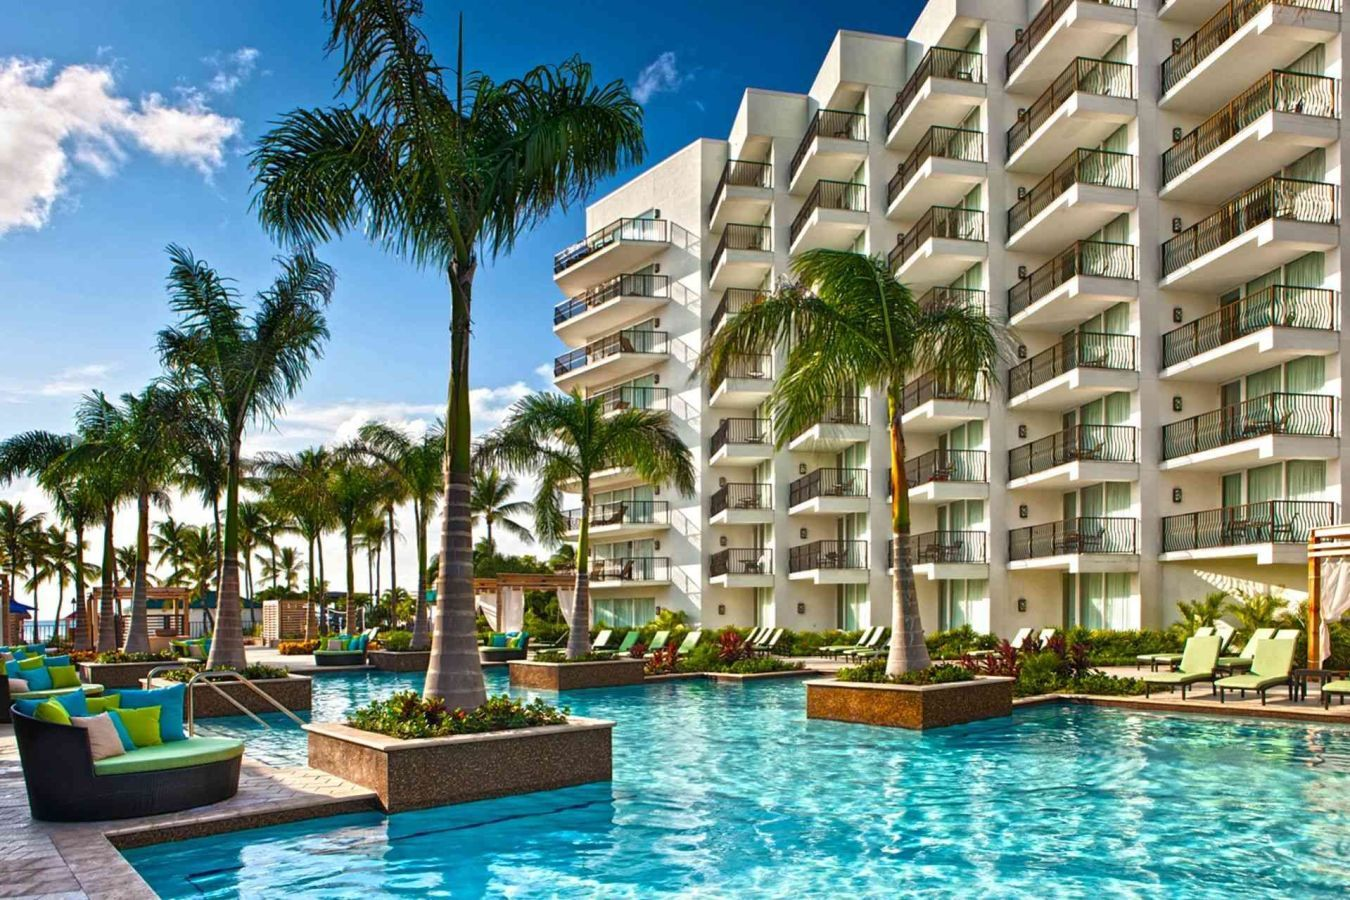 Miami timeshare rentals and resales